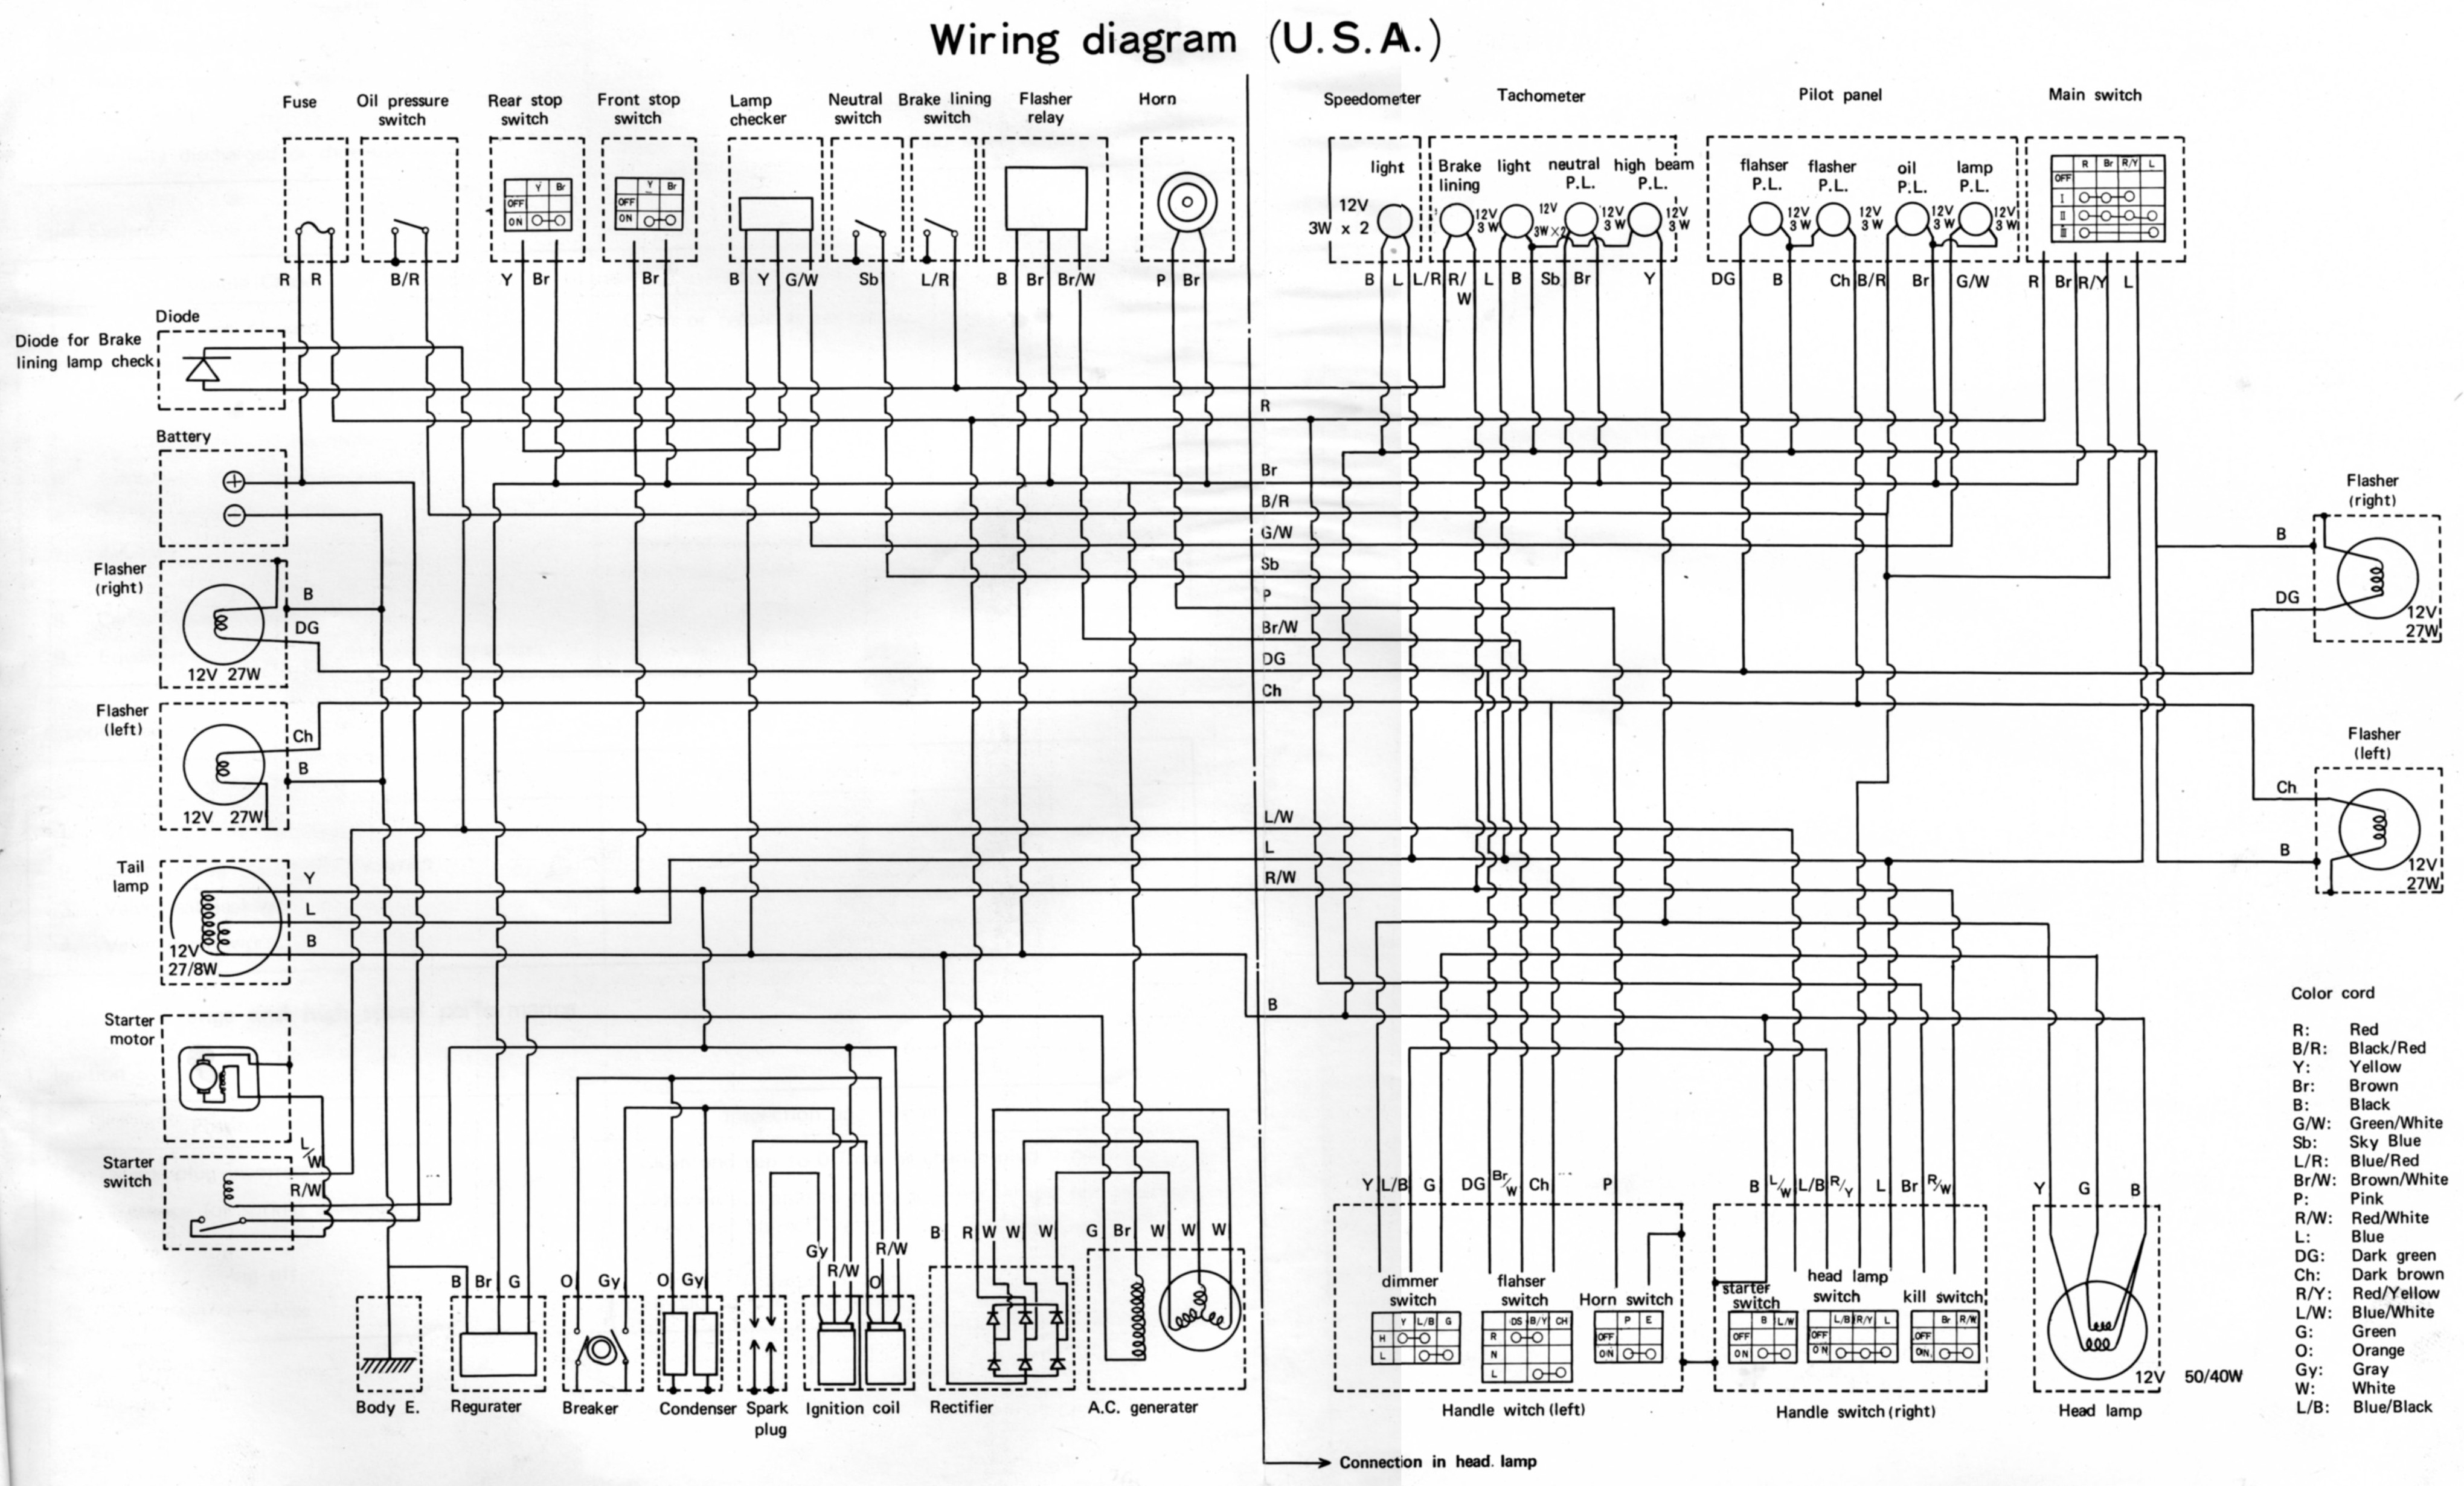 wiring diagrams r5 rd350 diagram and manual electrical section pdf